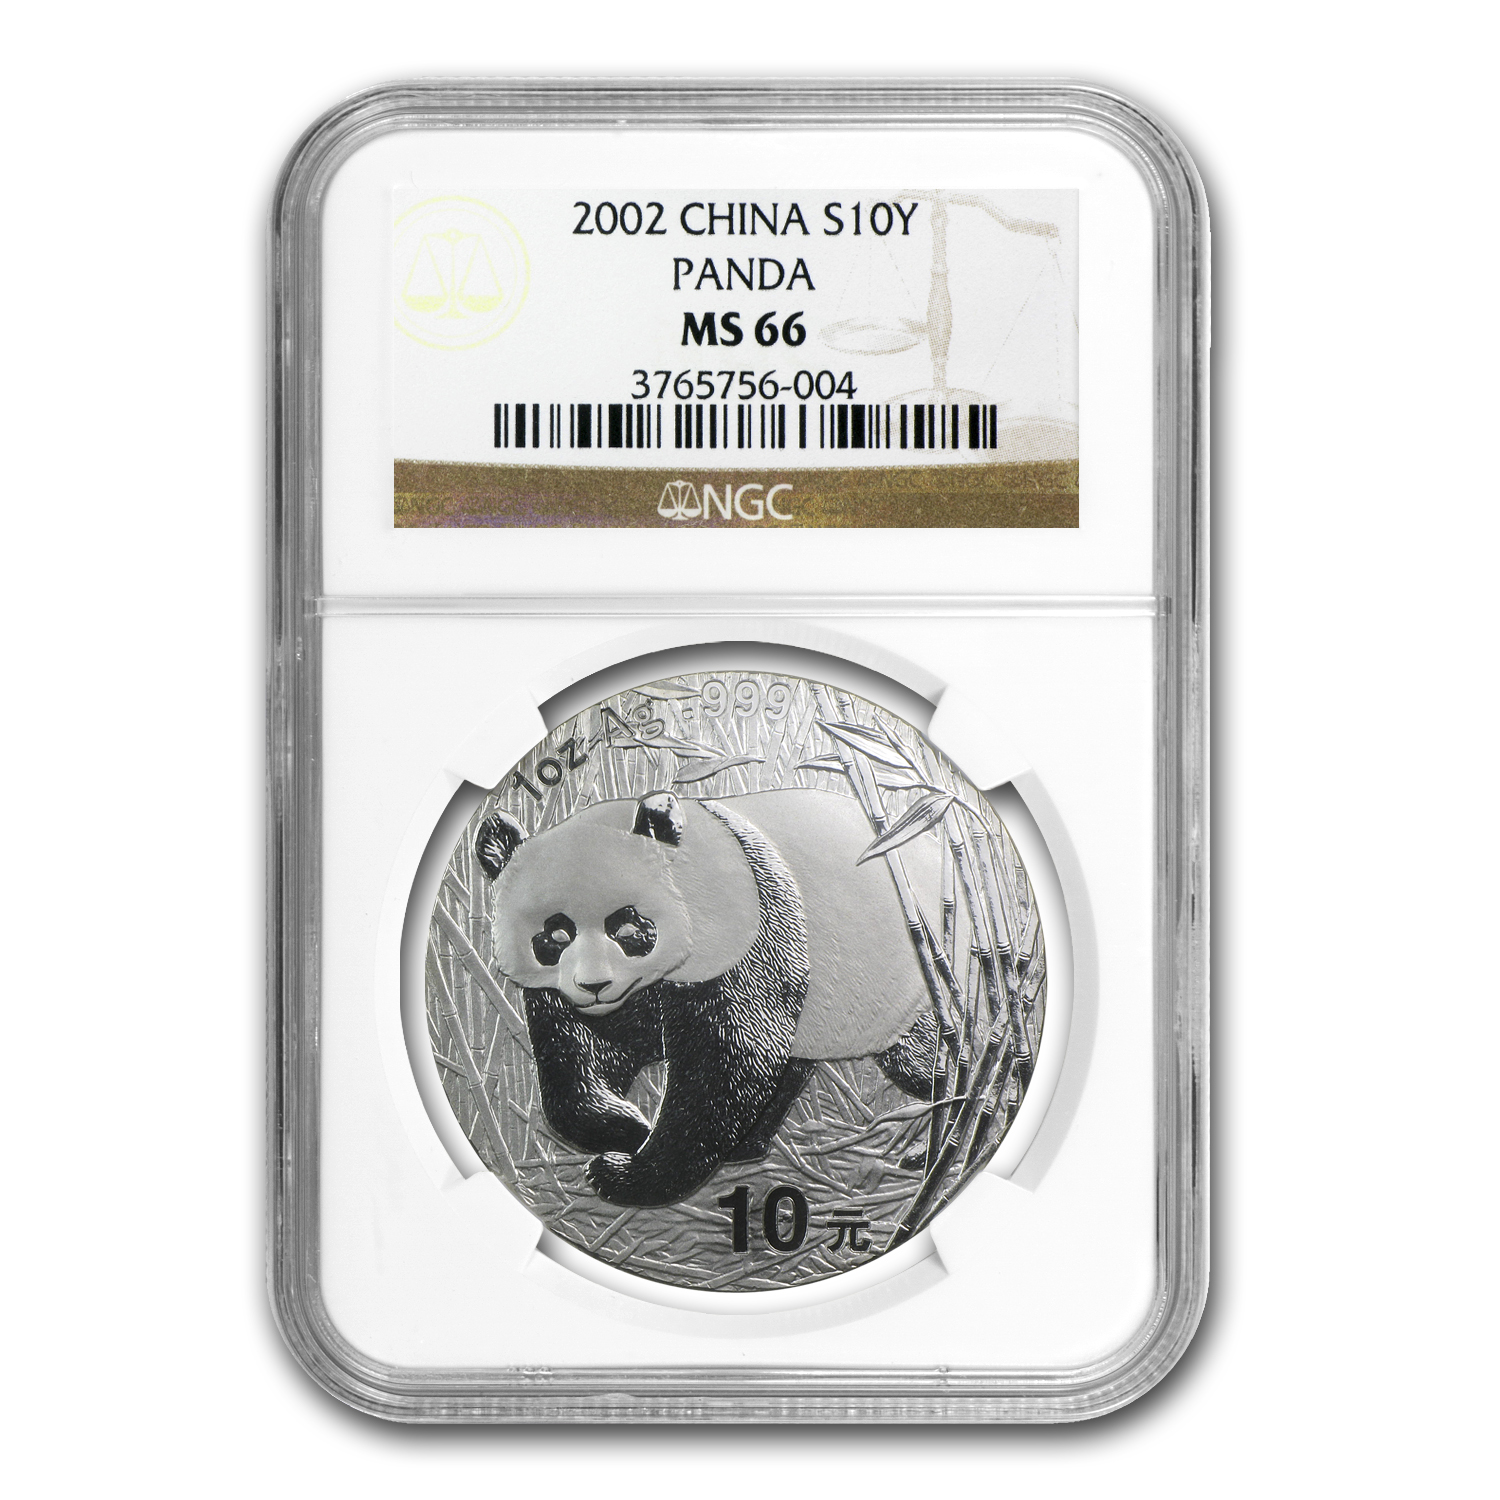 2002 China 1 oz Silver Panda MS-66 NGC